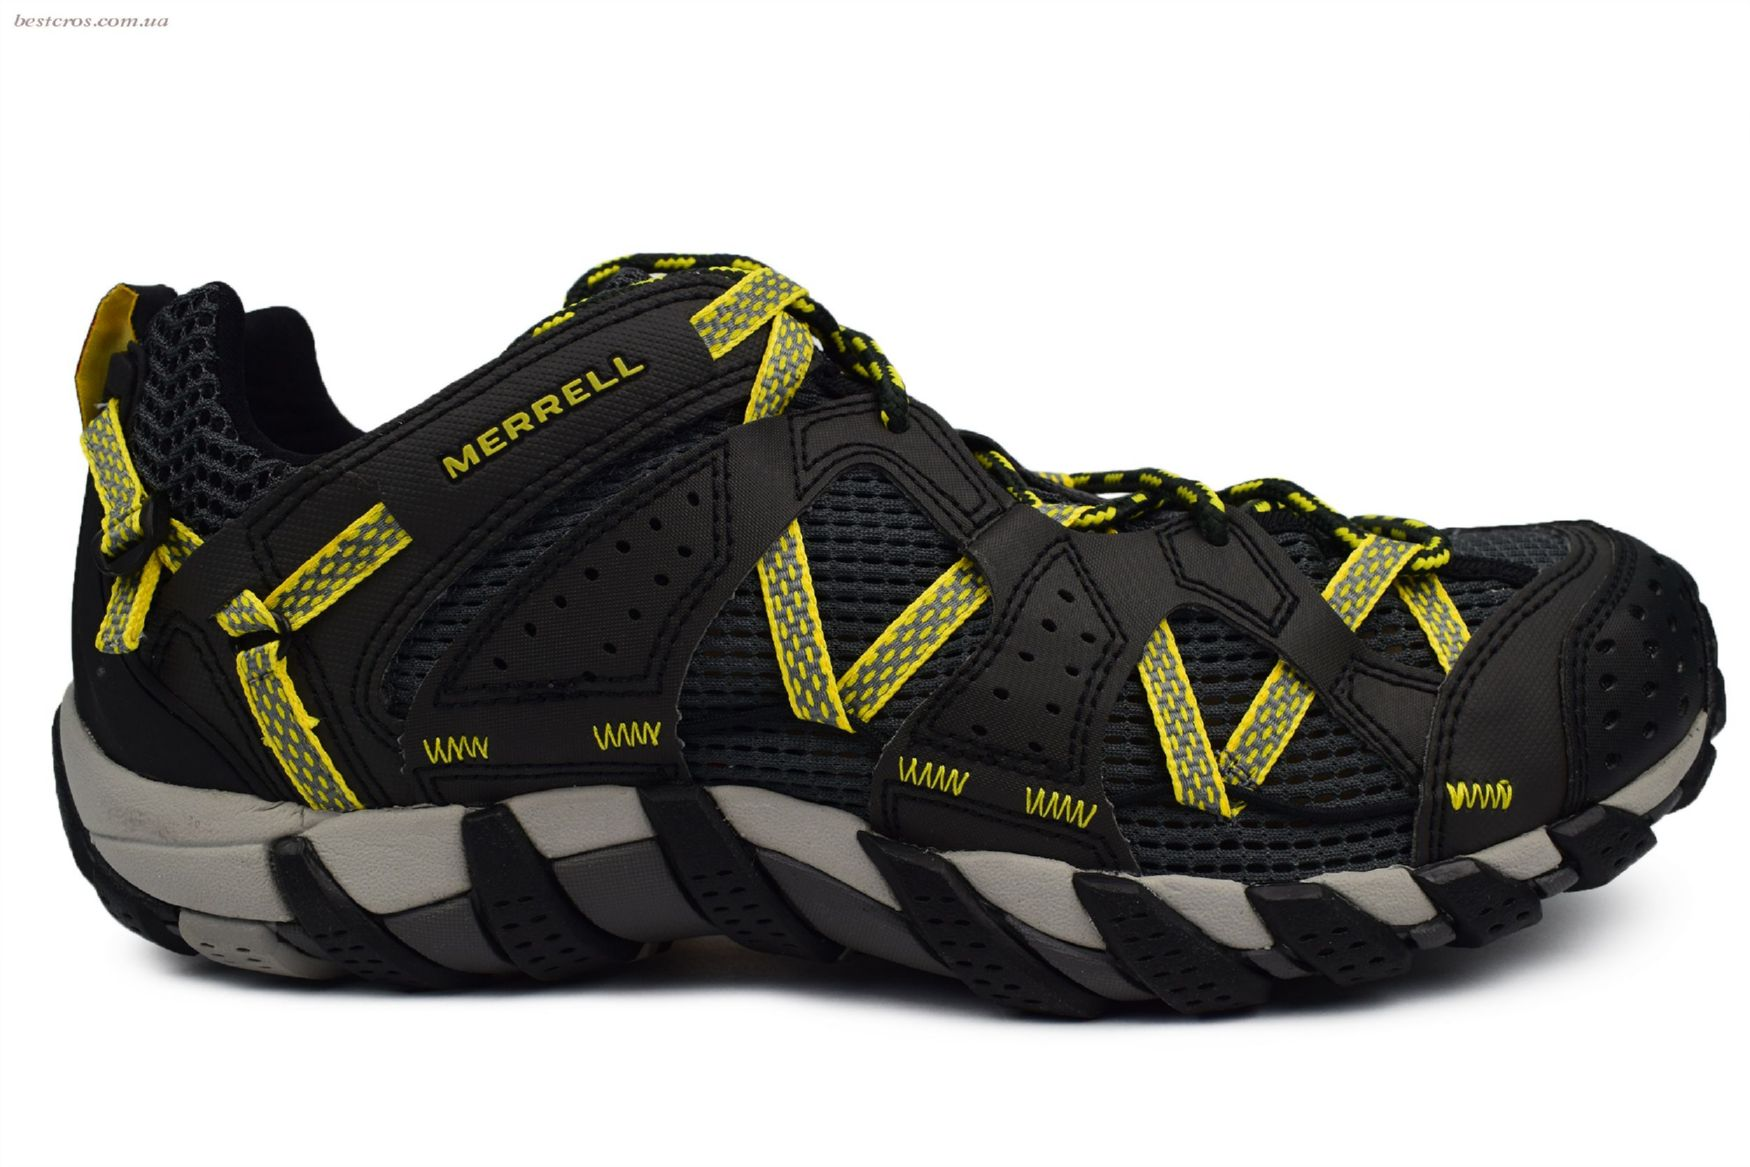 Мужские кроссовки Merrell Waterpro Maipo Black/Yellow